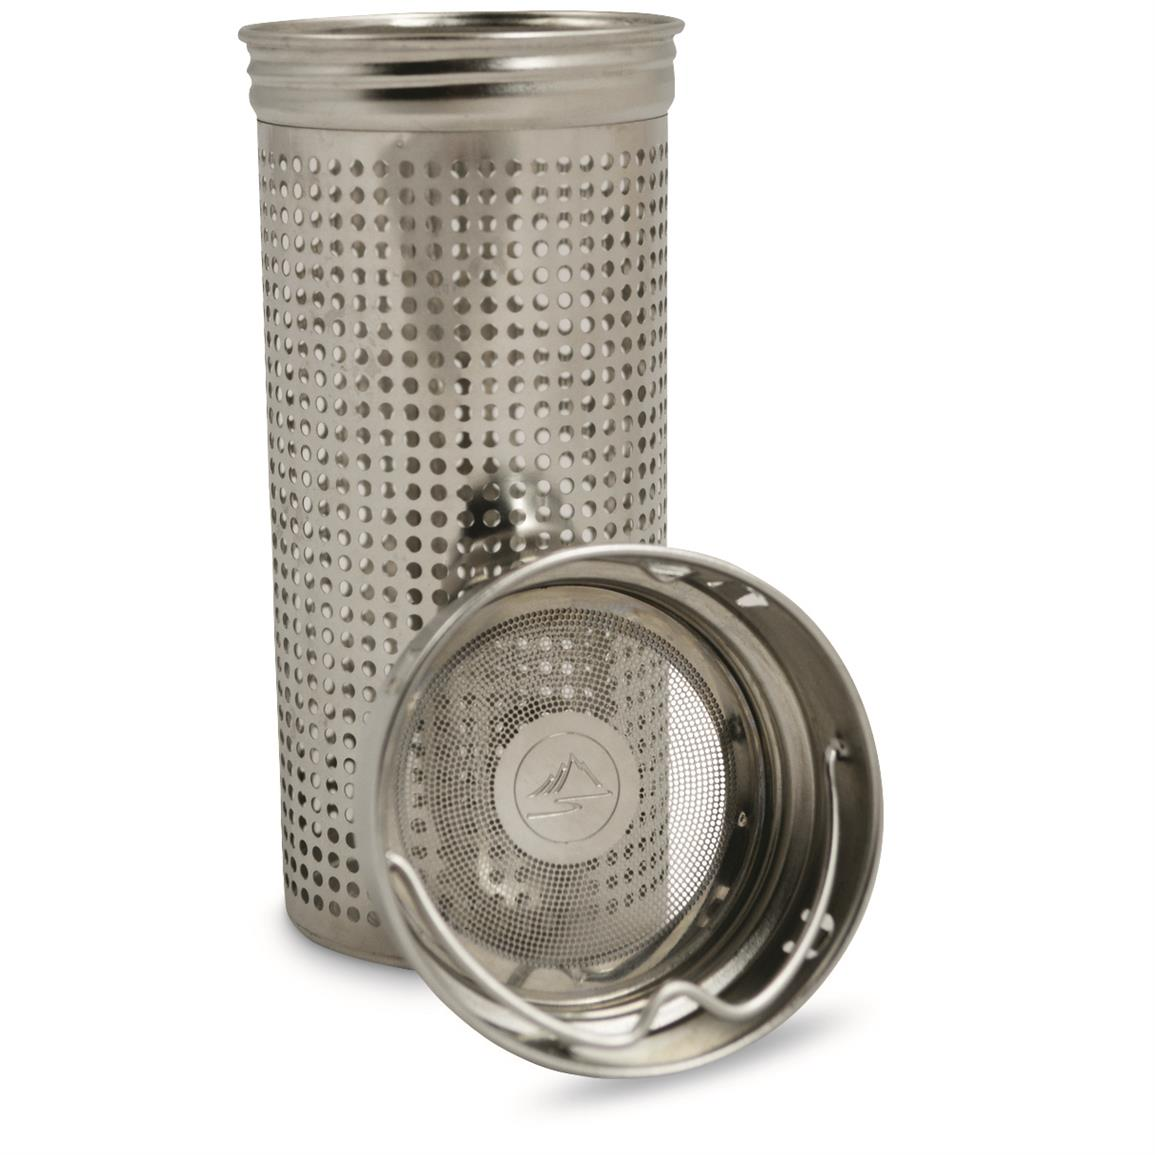 Removable mesh infuser